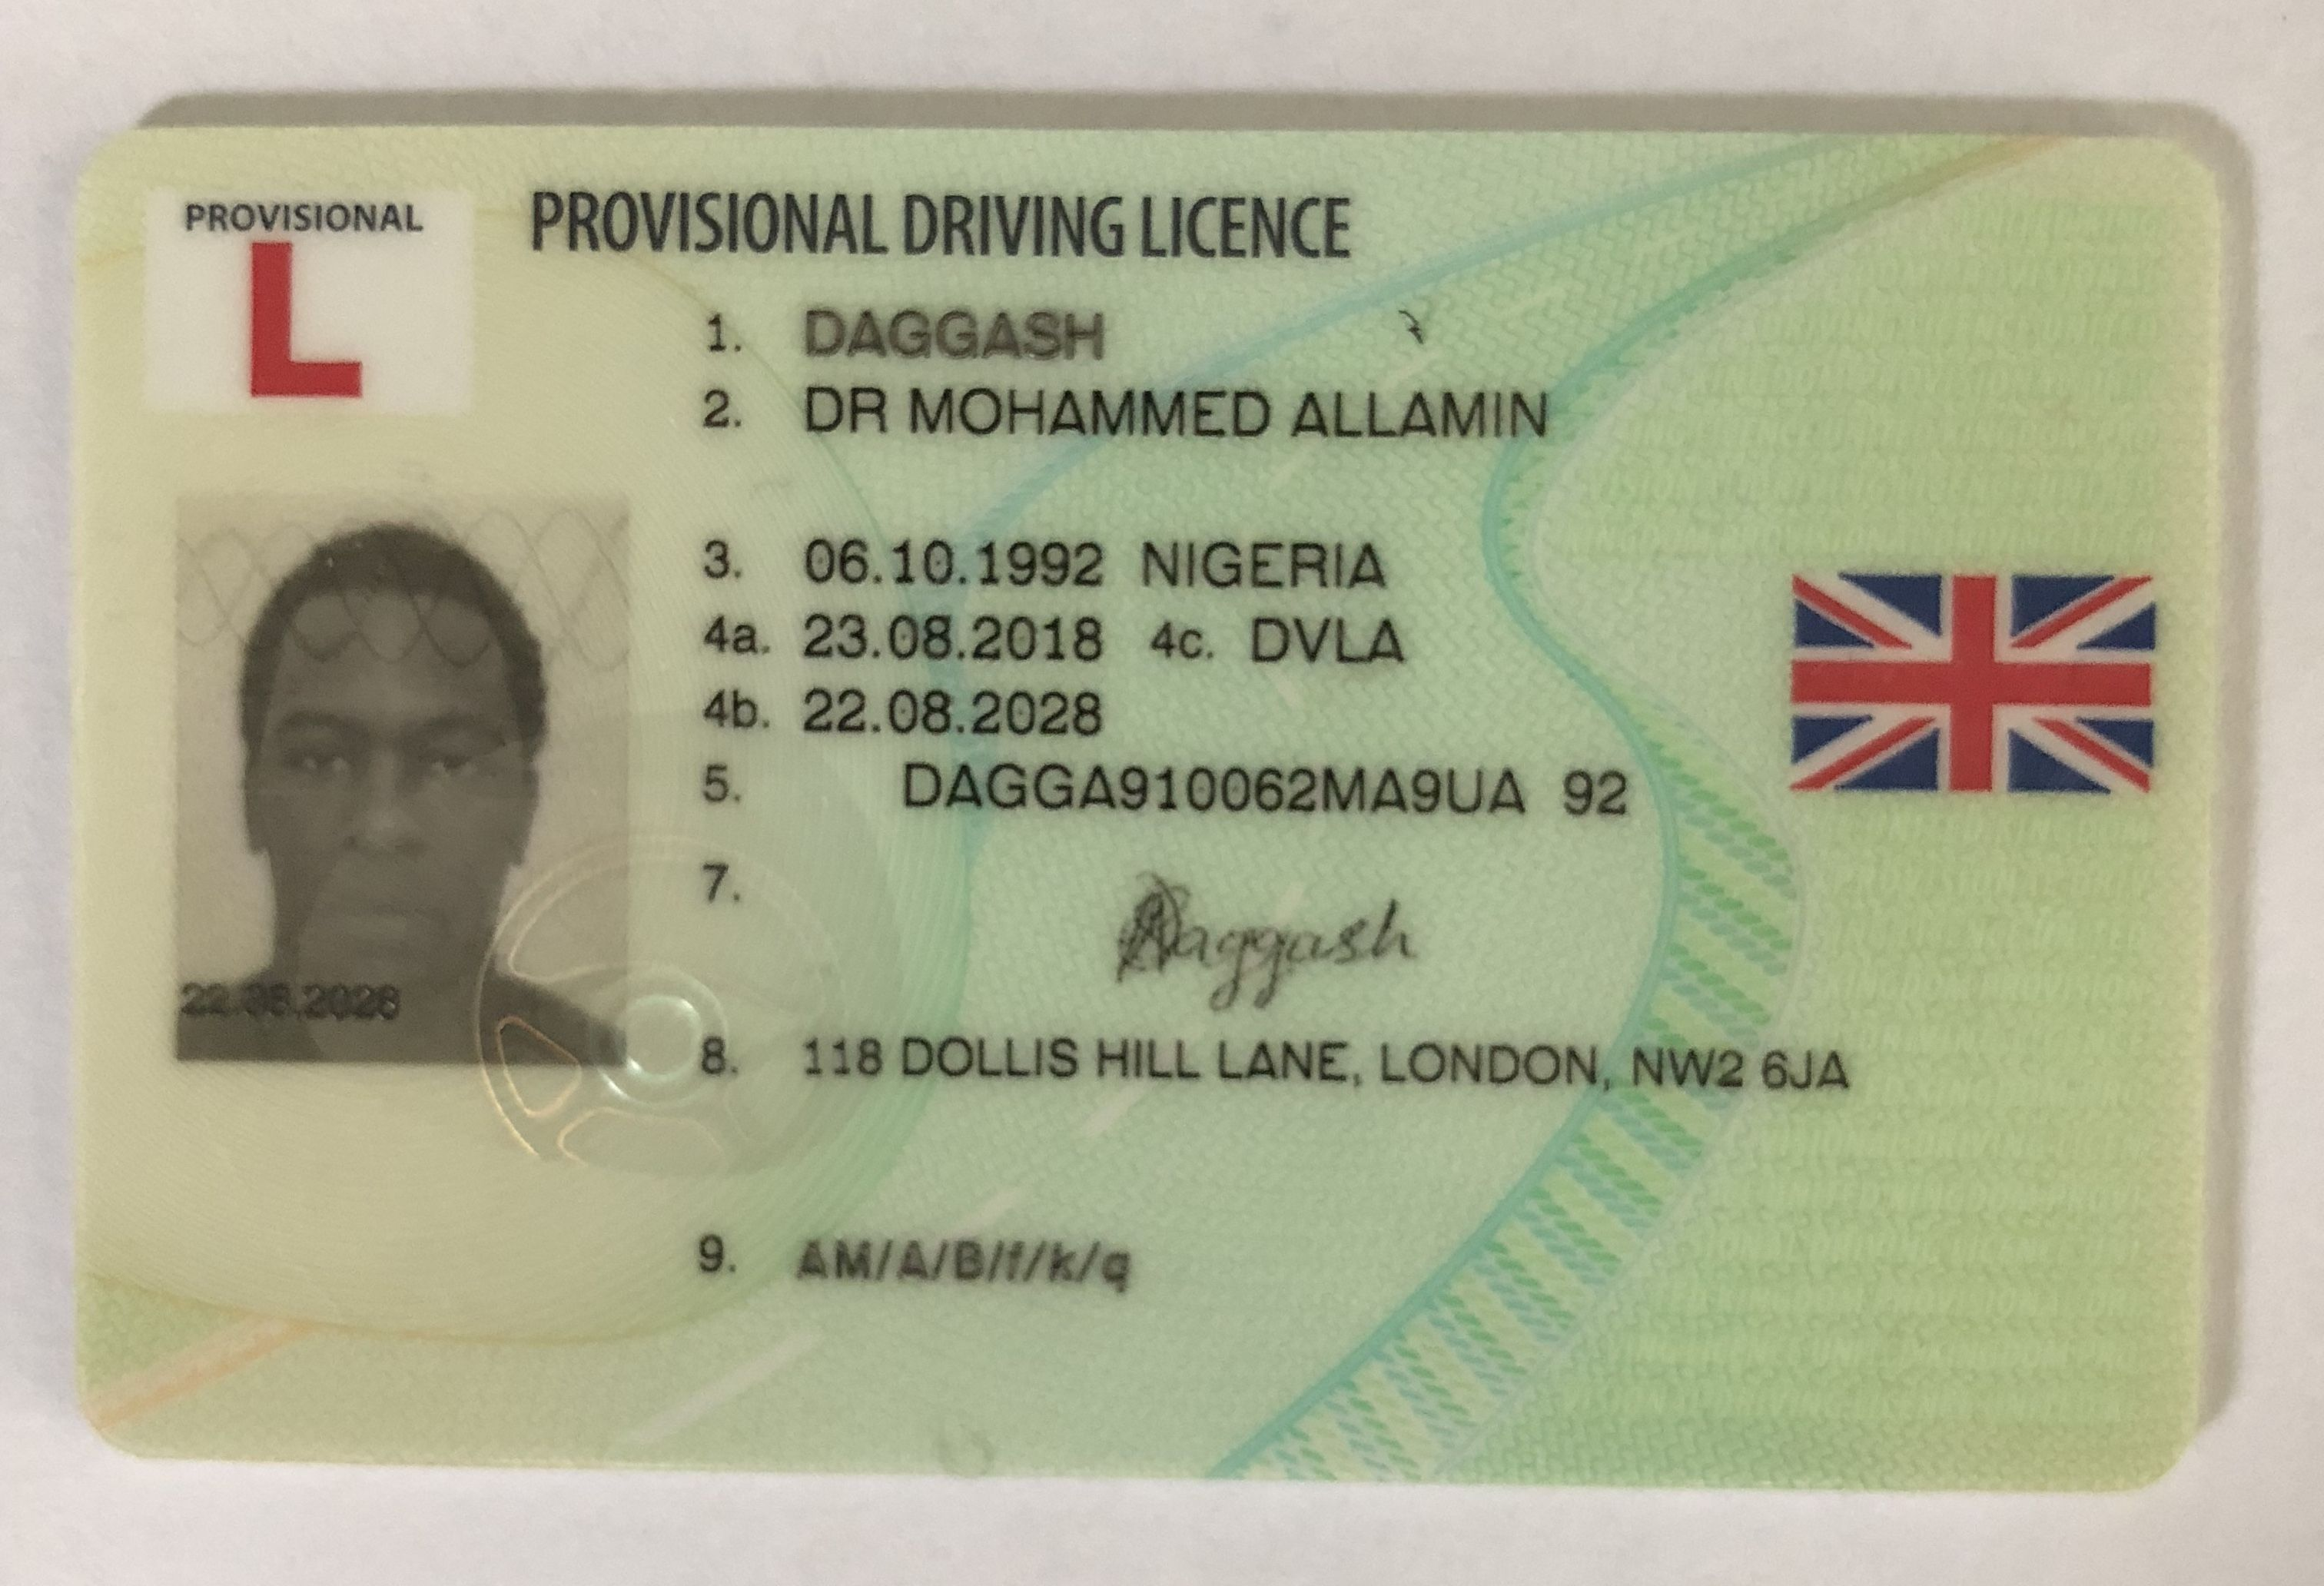 Provisional Driving Licence - What It Is For